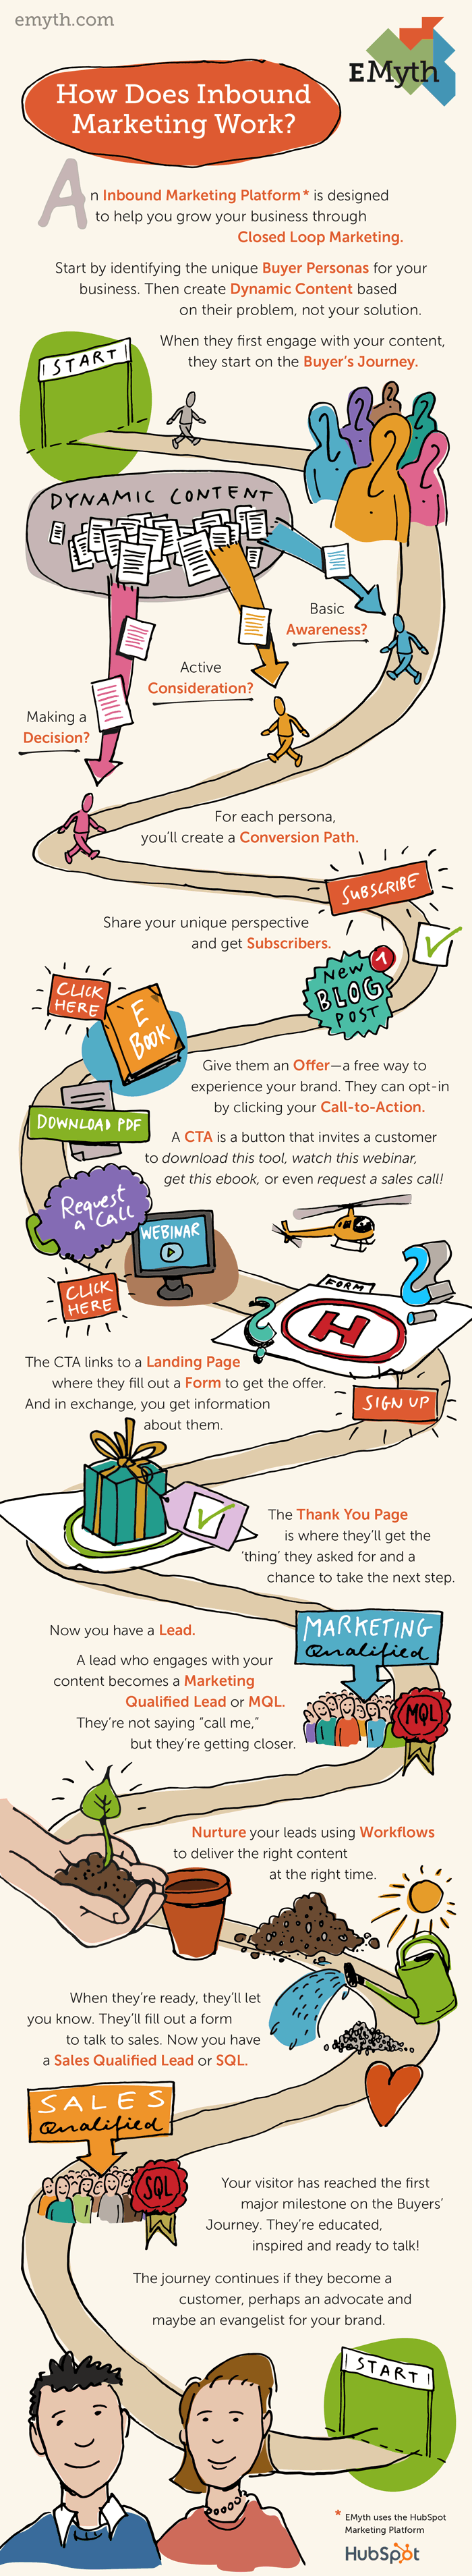 How Does Inbound Marketing Work? EMyth Infographic